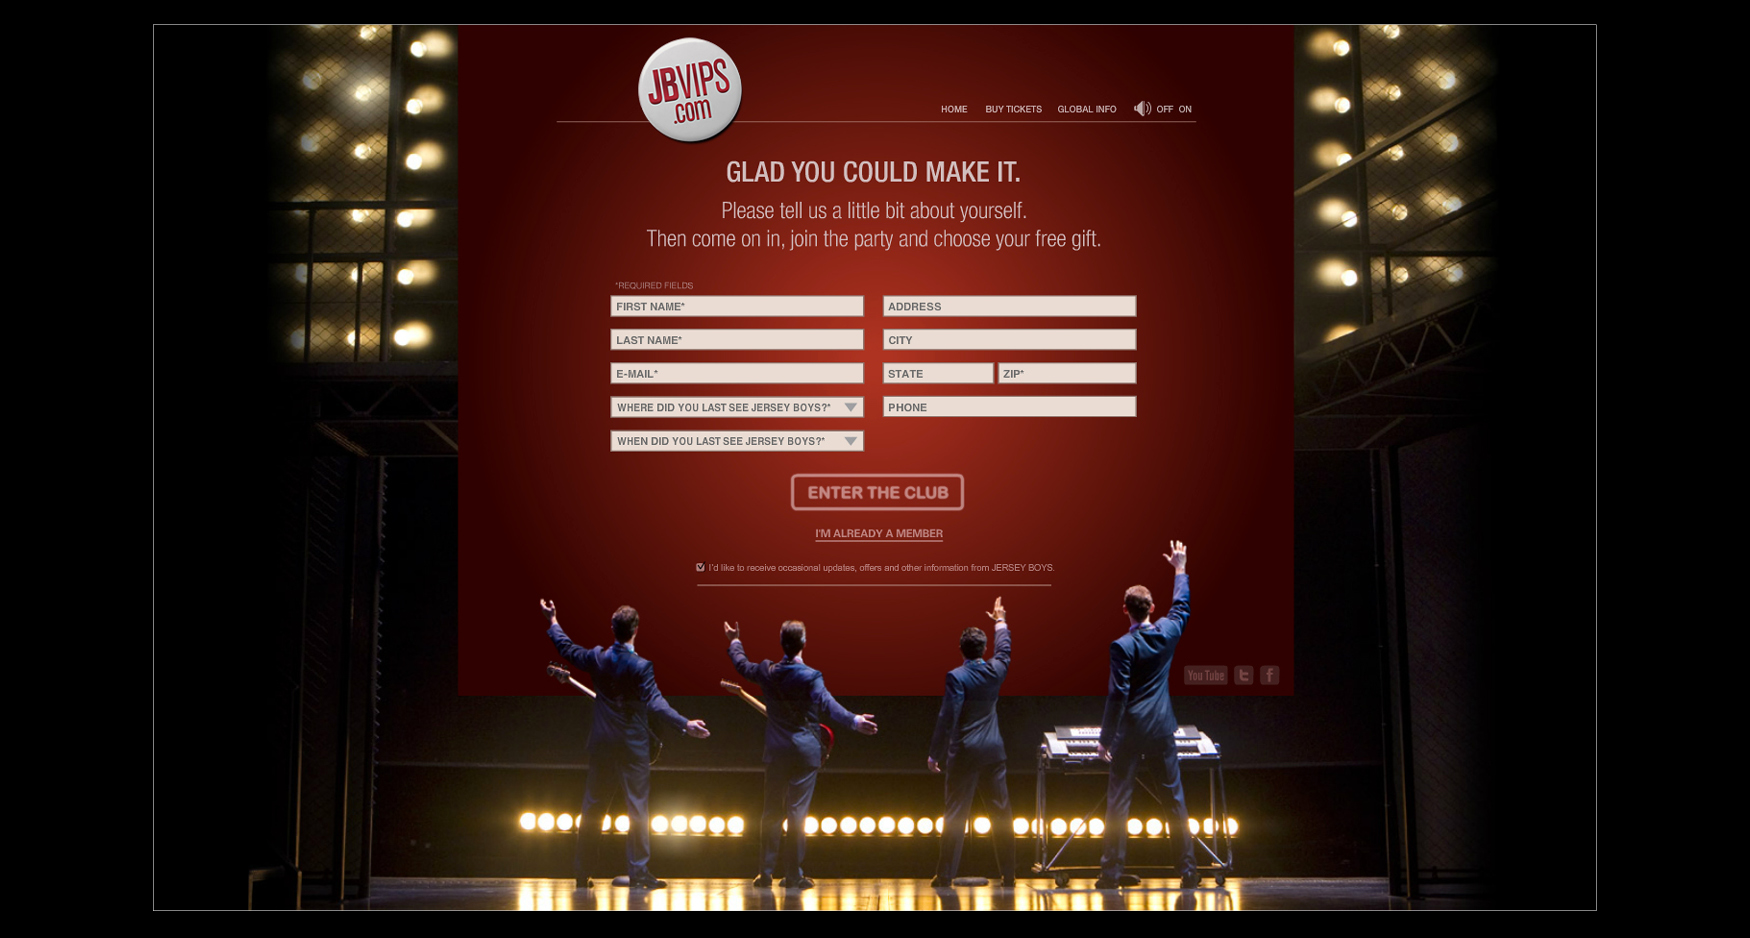 BP Large Images38 - JERSEY BOYS - CLUB ENTRY PAGE